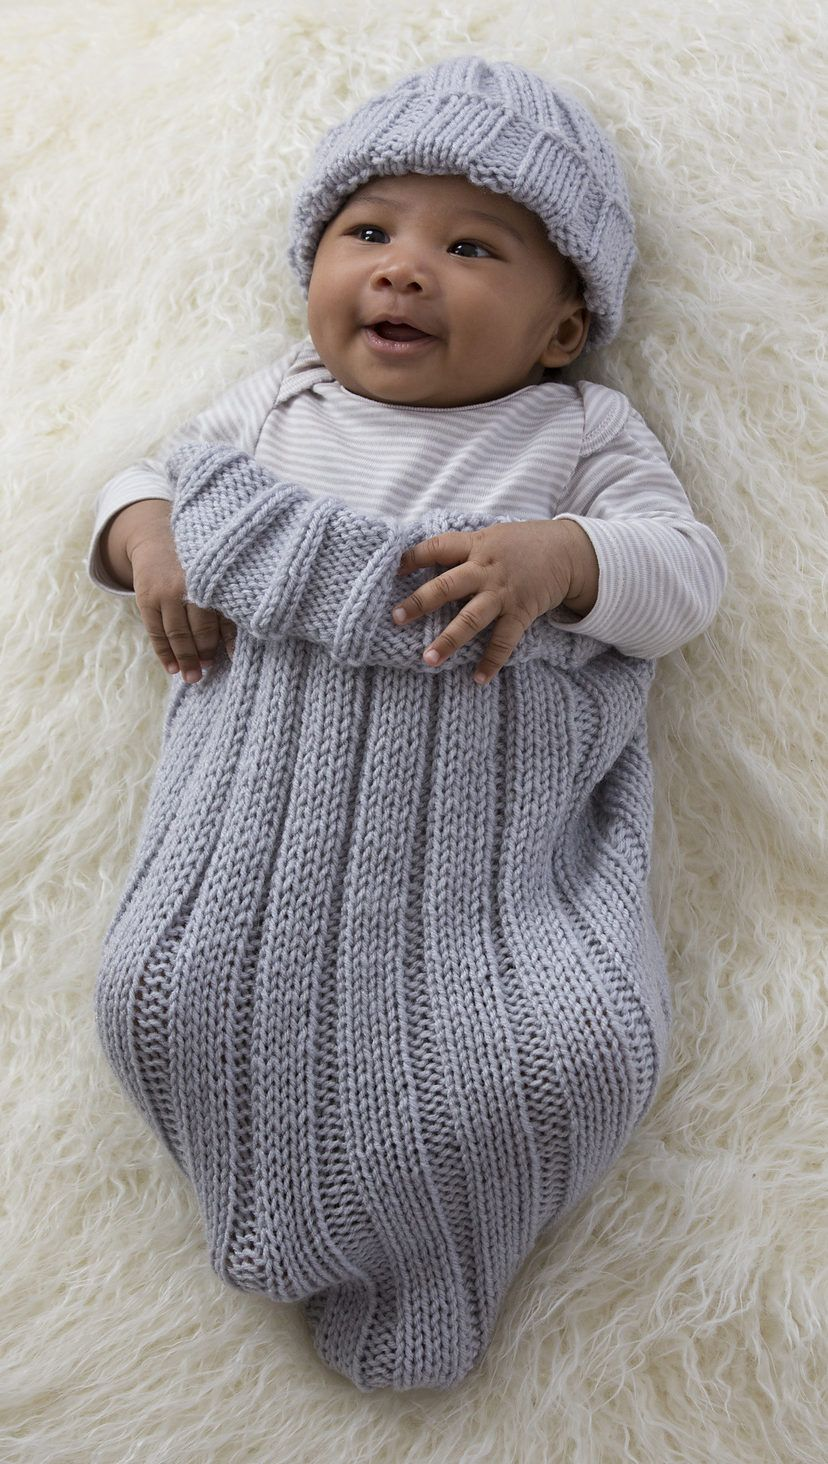 Knitting Designs For Baby Boy : Baby cocoon snuggly sleep sack wrap knitting patterns